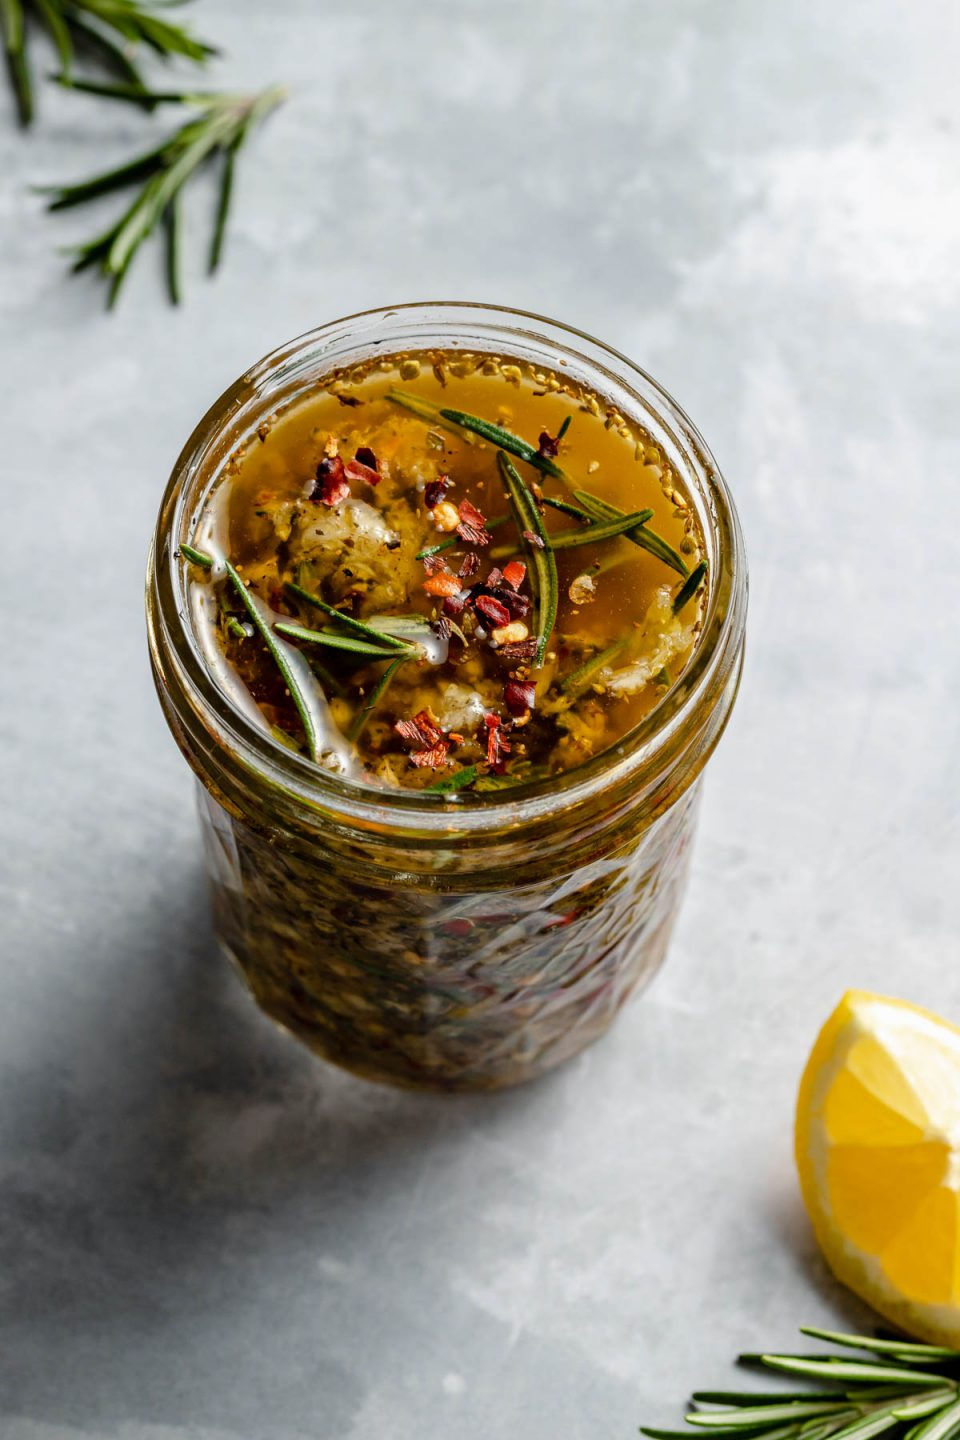 Tuscan marinade shown in a small ball jar, sitting atop a light blue surface with a lemon wedge in the foreground & fresh rosemary sprigs in the background.